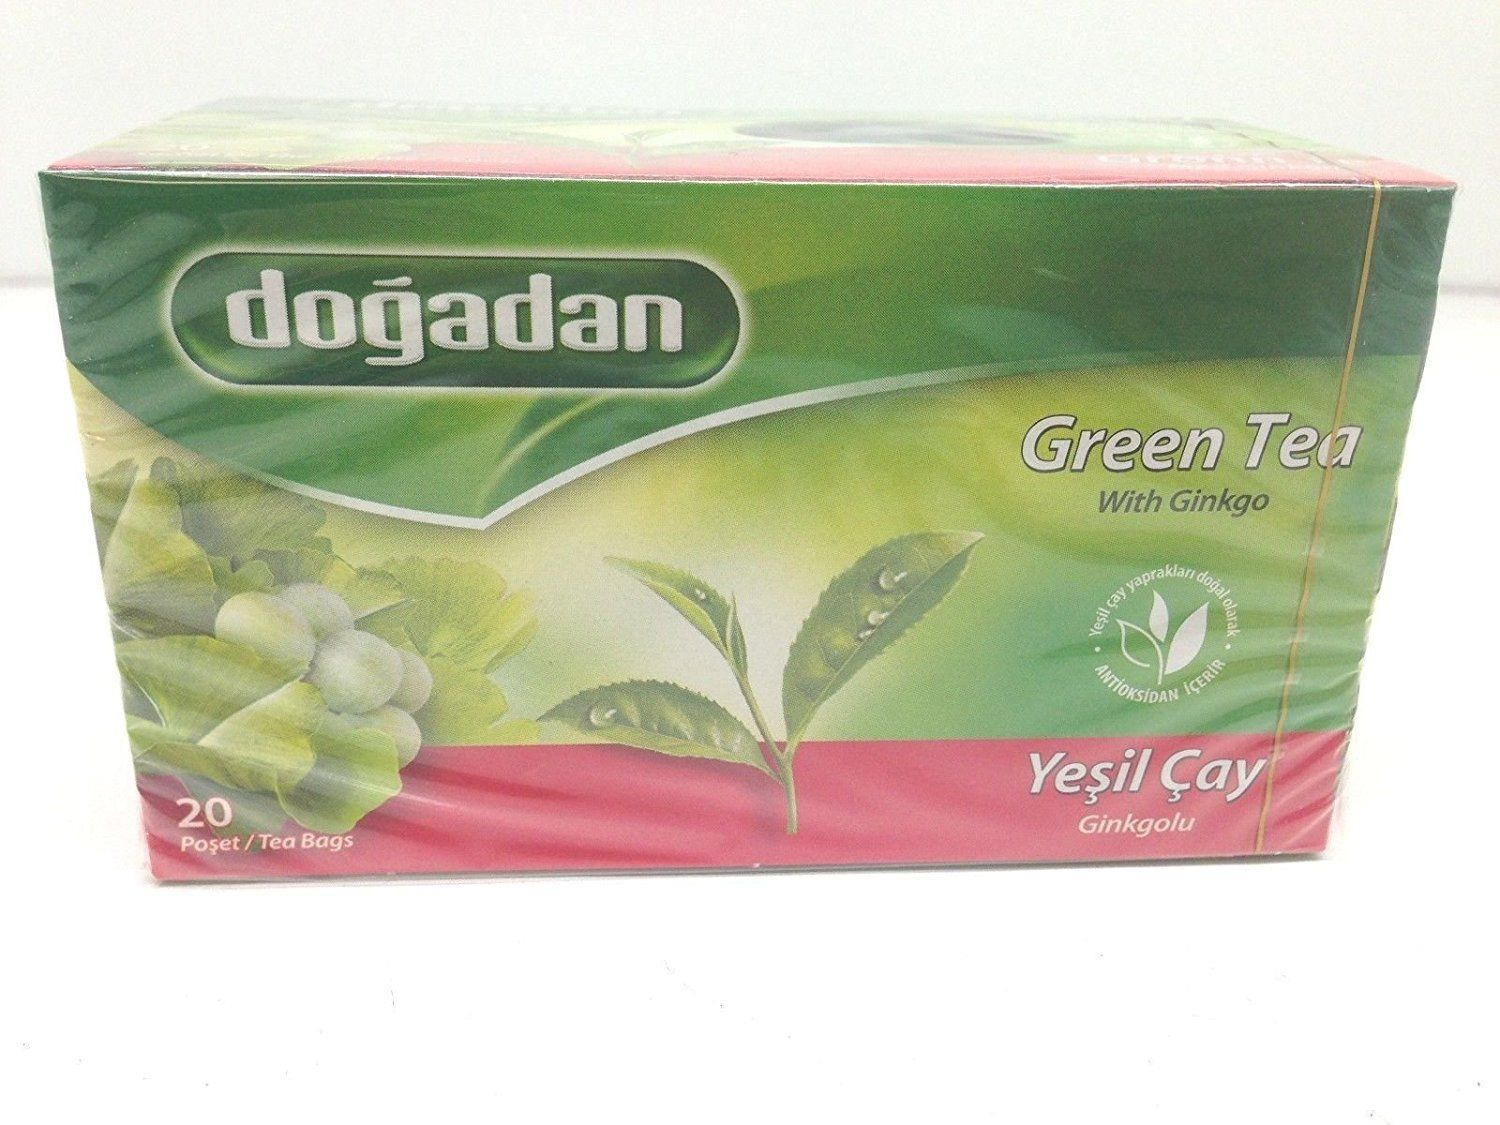 Dogadan green tea with ginkgo 3 pack each 20 tea bags x 3 dogadan green tea with ginkgo 3 pack each 20 tea bags x 3 izmirmasajfo Images